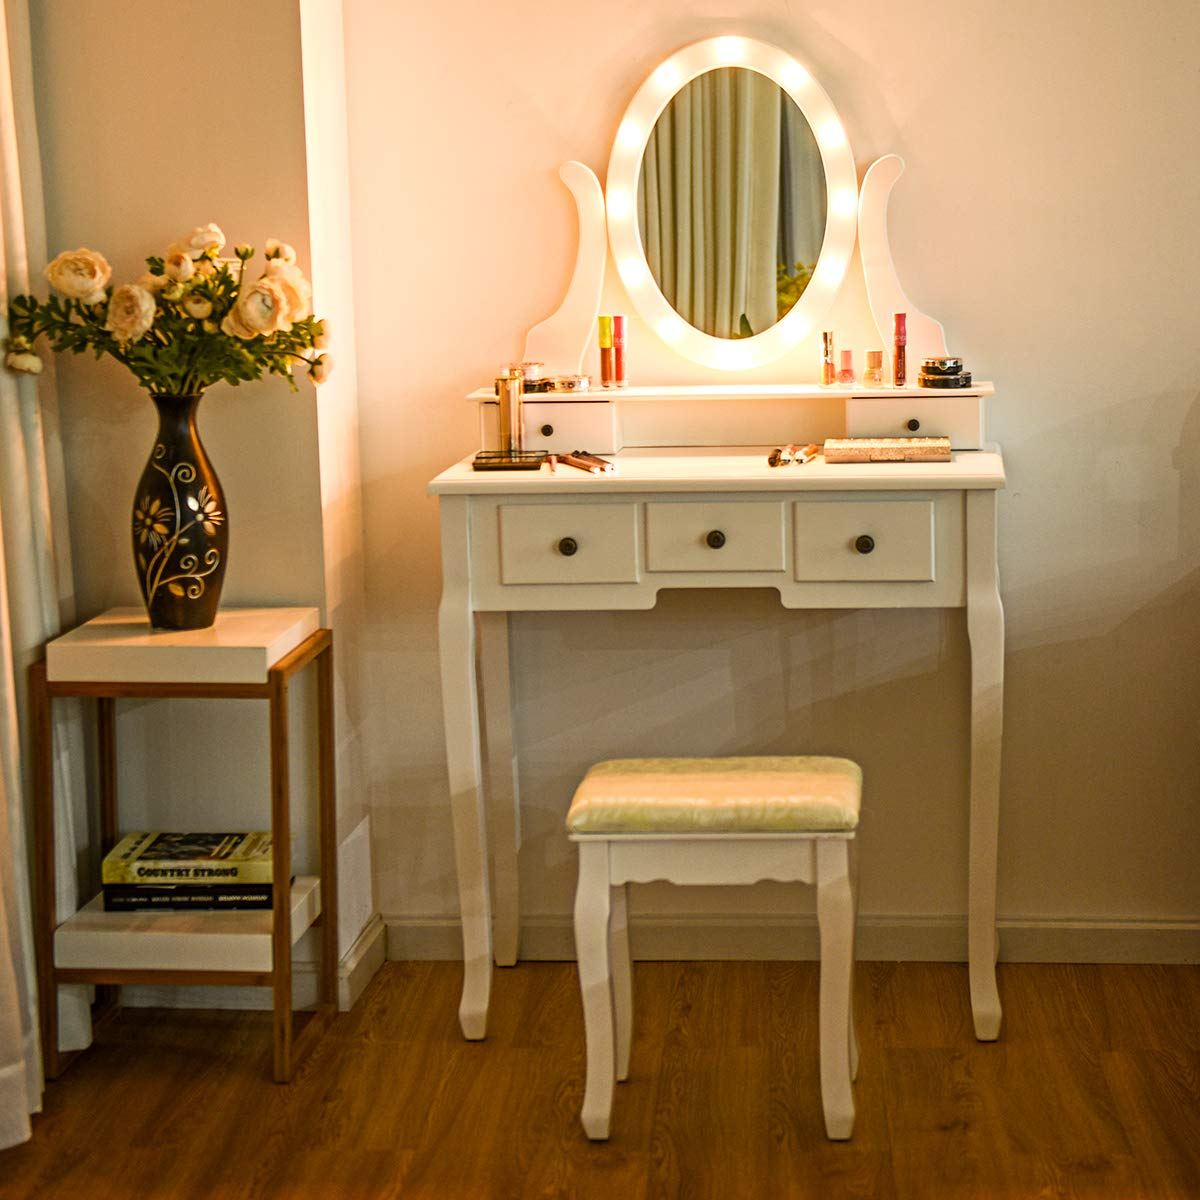 Giantex Vanity Set with 12 LED Lights Mirror and Cushioned Stool, Dressing Table with 360° Rotating Mirror, 5 Drawers & Makeup Shelf, Writing Desk Makeup Table with Bench (White) by Giantex